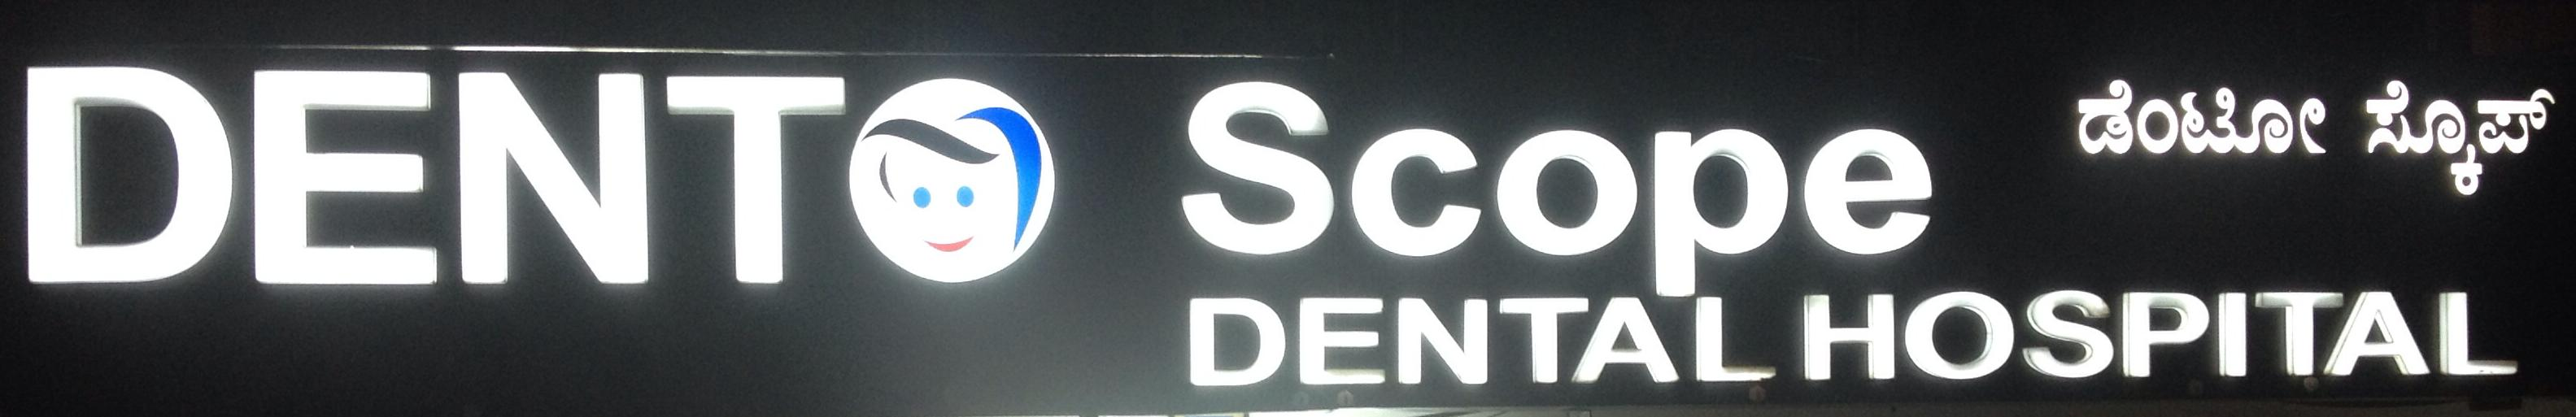 Dentoscope Dental Hospital